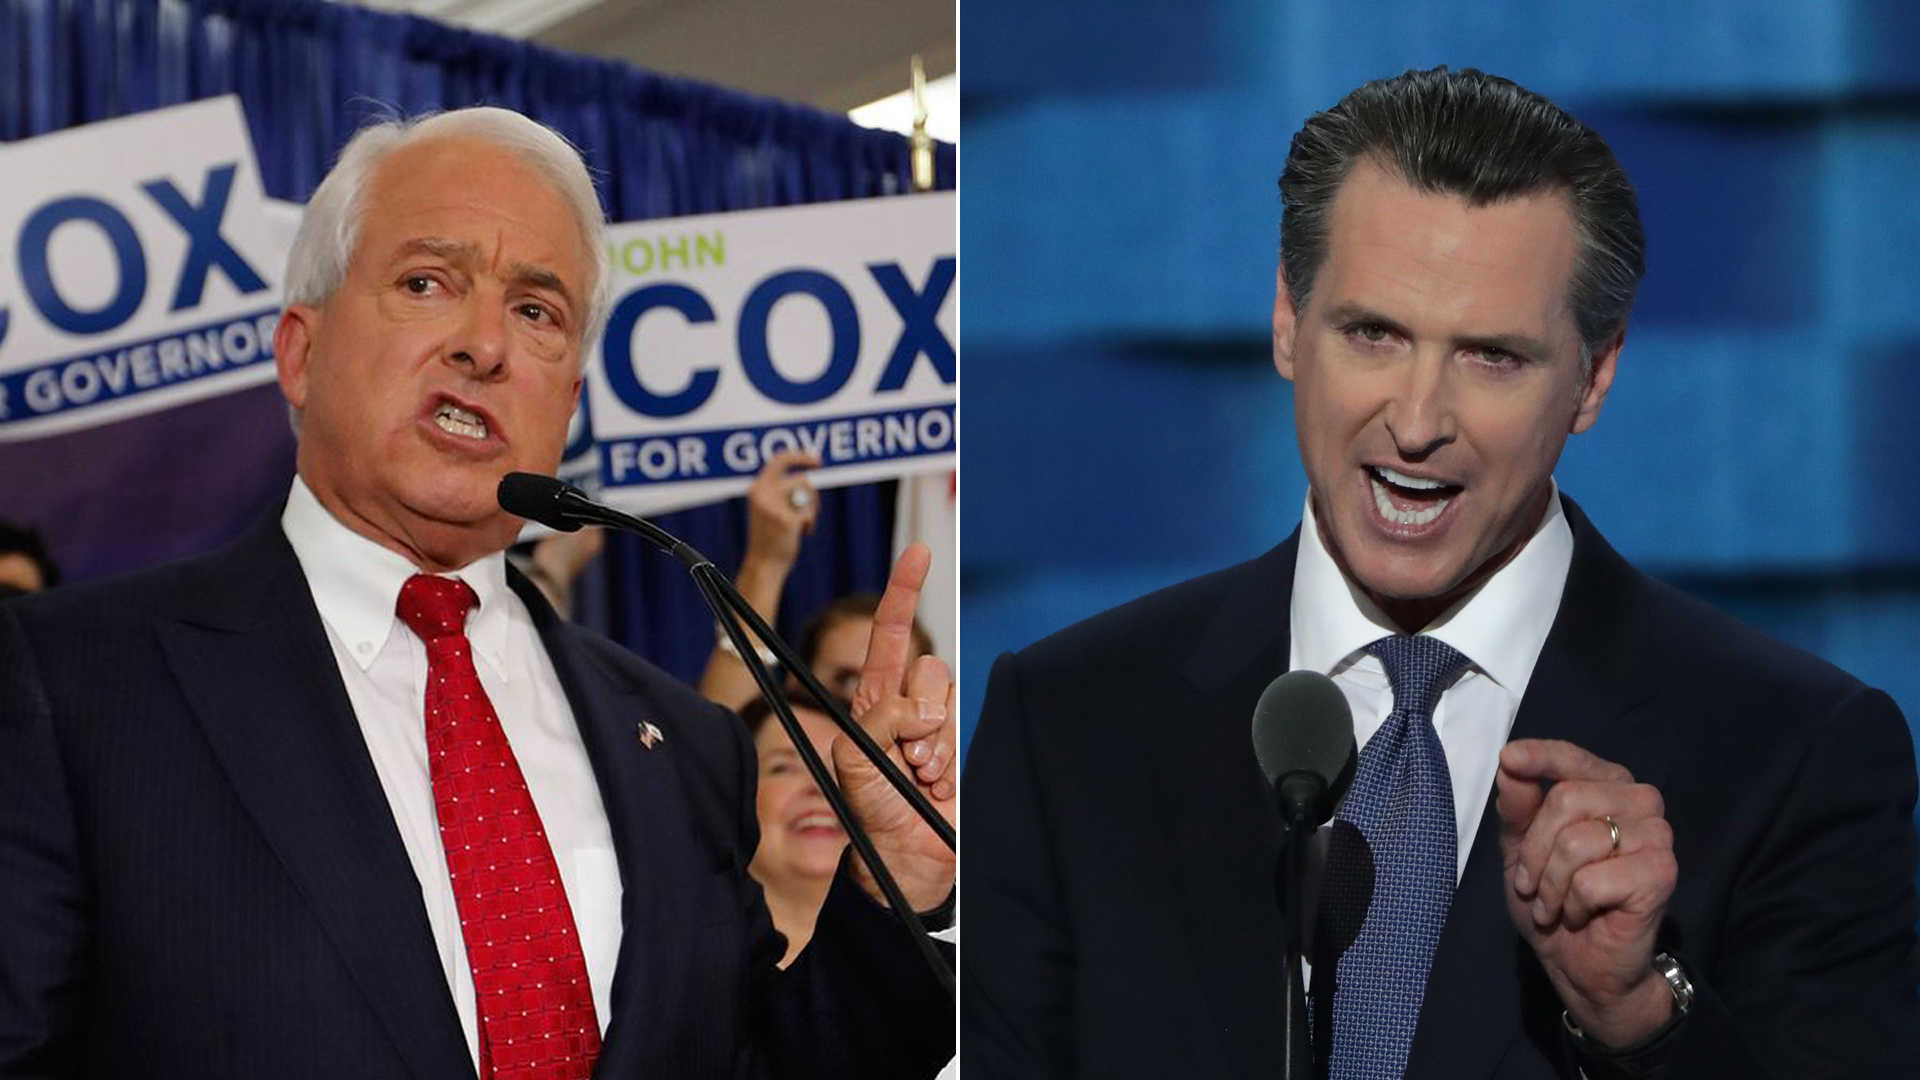 From left: Republican gubernatorial candidate John Cox addresses supporters at his primary election-night party in San Diego on June 5, 2018, and Gavin Newsom delivers remarks at the Democratic National Convention in Philadelphia on July 27, 2016. (Credit: Allen J. Schaben / Los Angeles Times; Alex Wong / Getty Images)